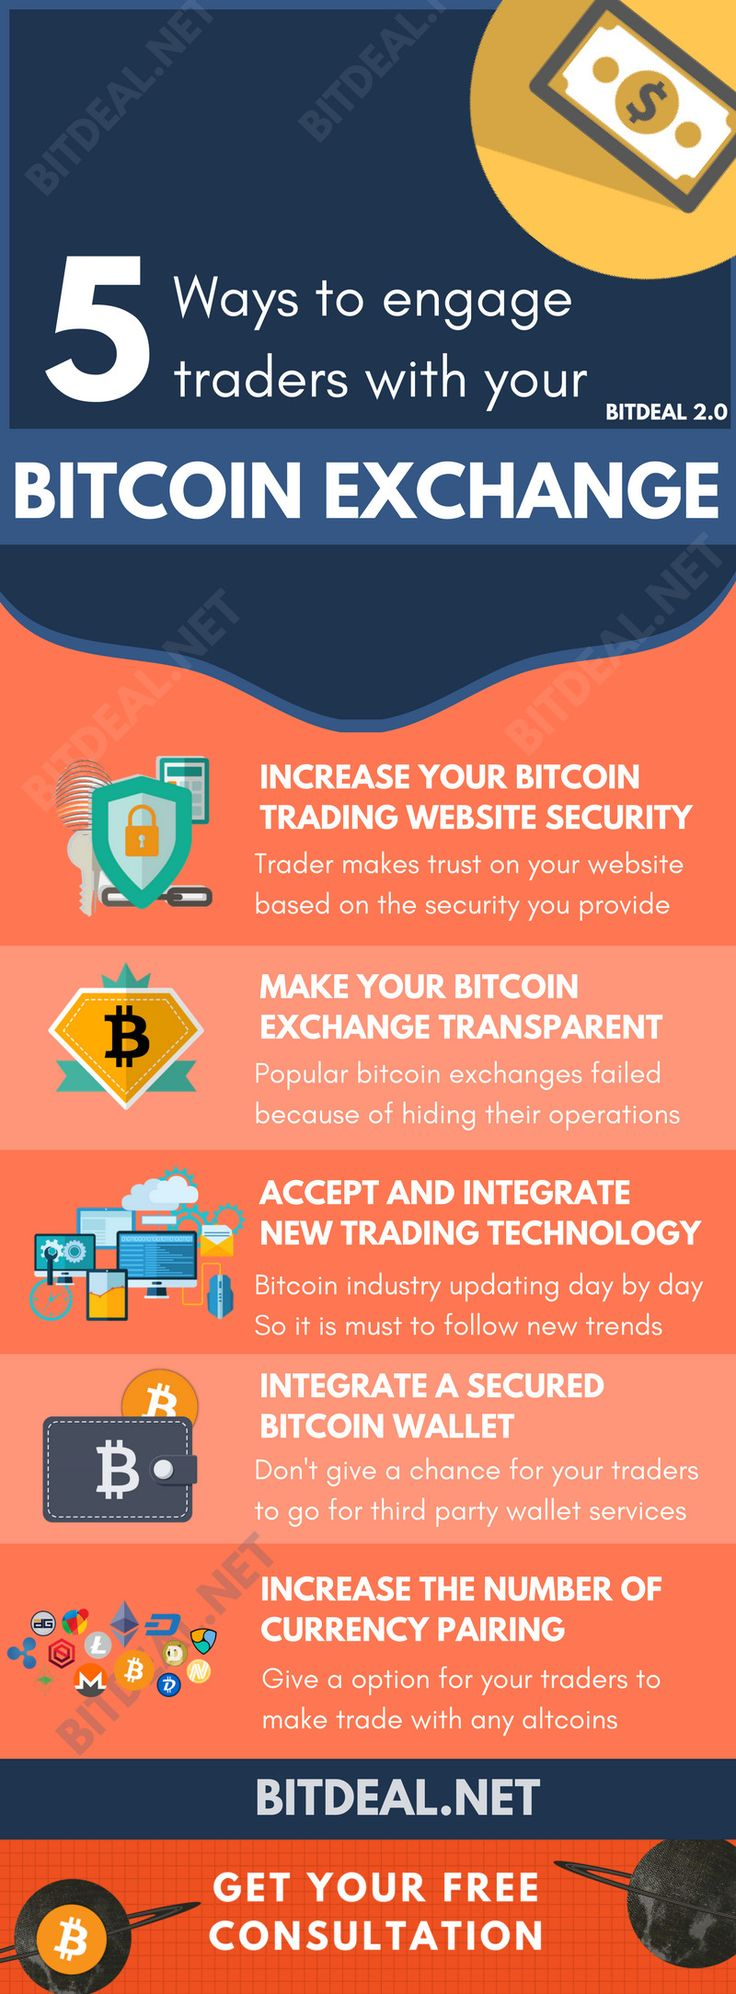 Popular bitcoin exchanges also losses their marketplace just becuase of not following the trends  technologies, and fails to engage customers! find out the easy ways to make your bitcoin exchange business to succeed!